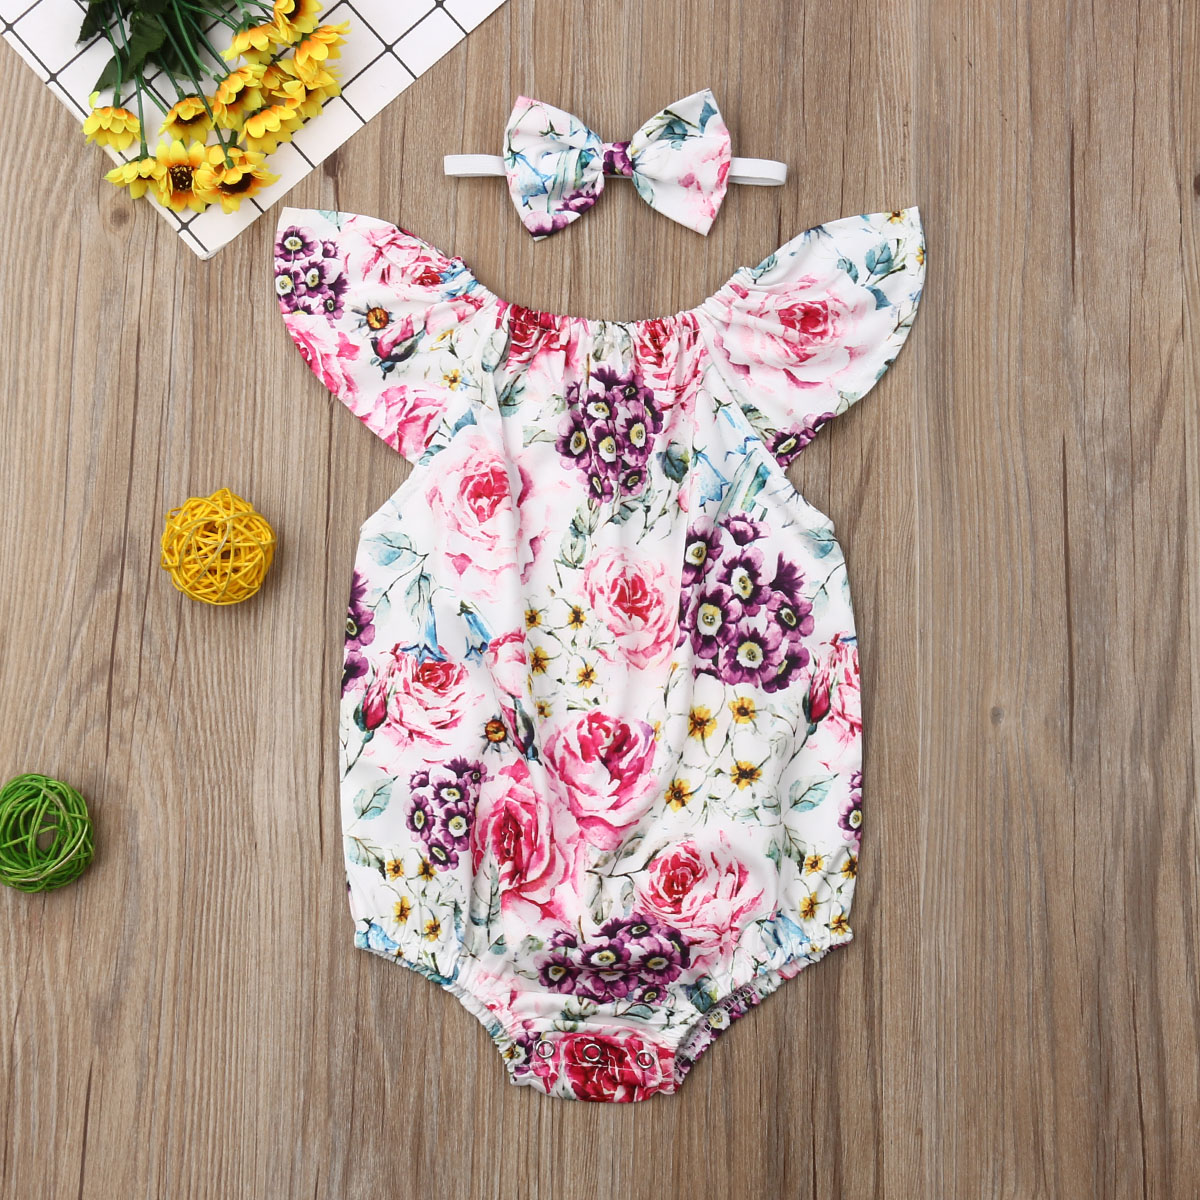 Pudcoco Newborn Baby Girl Clothes Sleeveless Flower Print Romper Jumpsuit Headband 2Pcs Outfits Baby Clothes